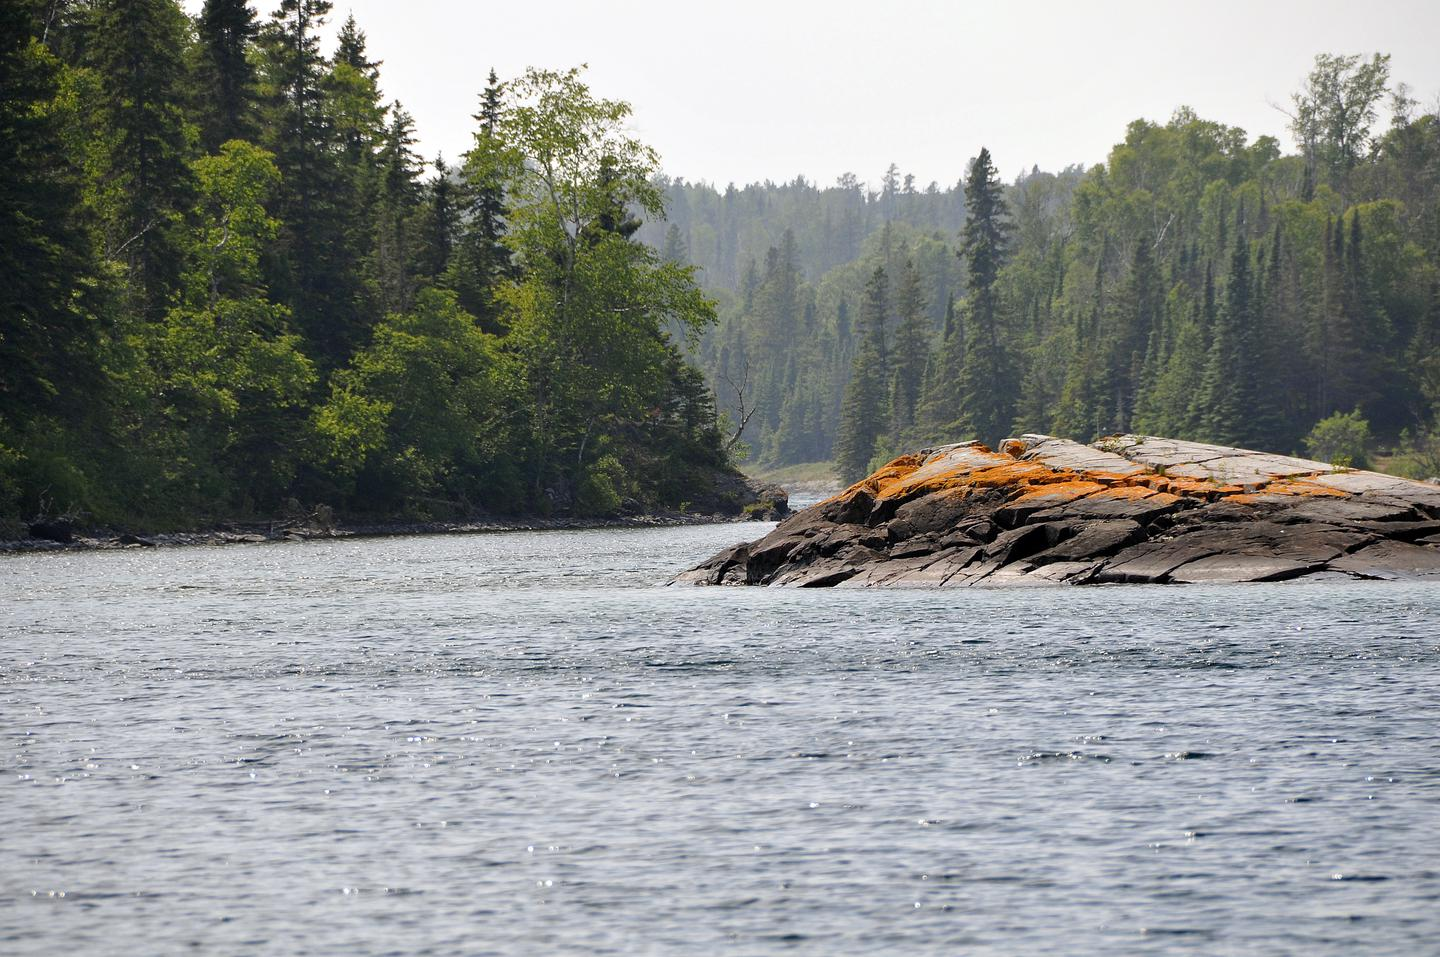 Entrance to Chippewa HarborThe entrance to Chippewa Harbor is located on the south shore of Isle Royale National Park.